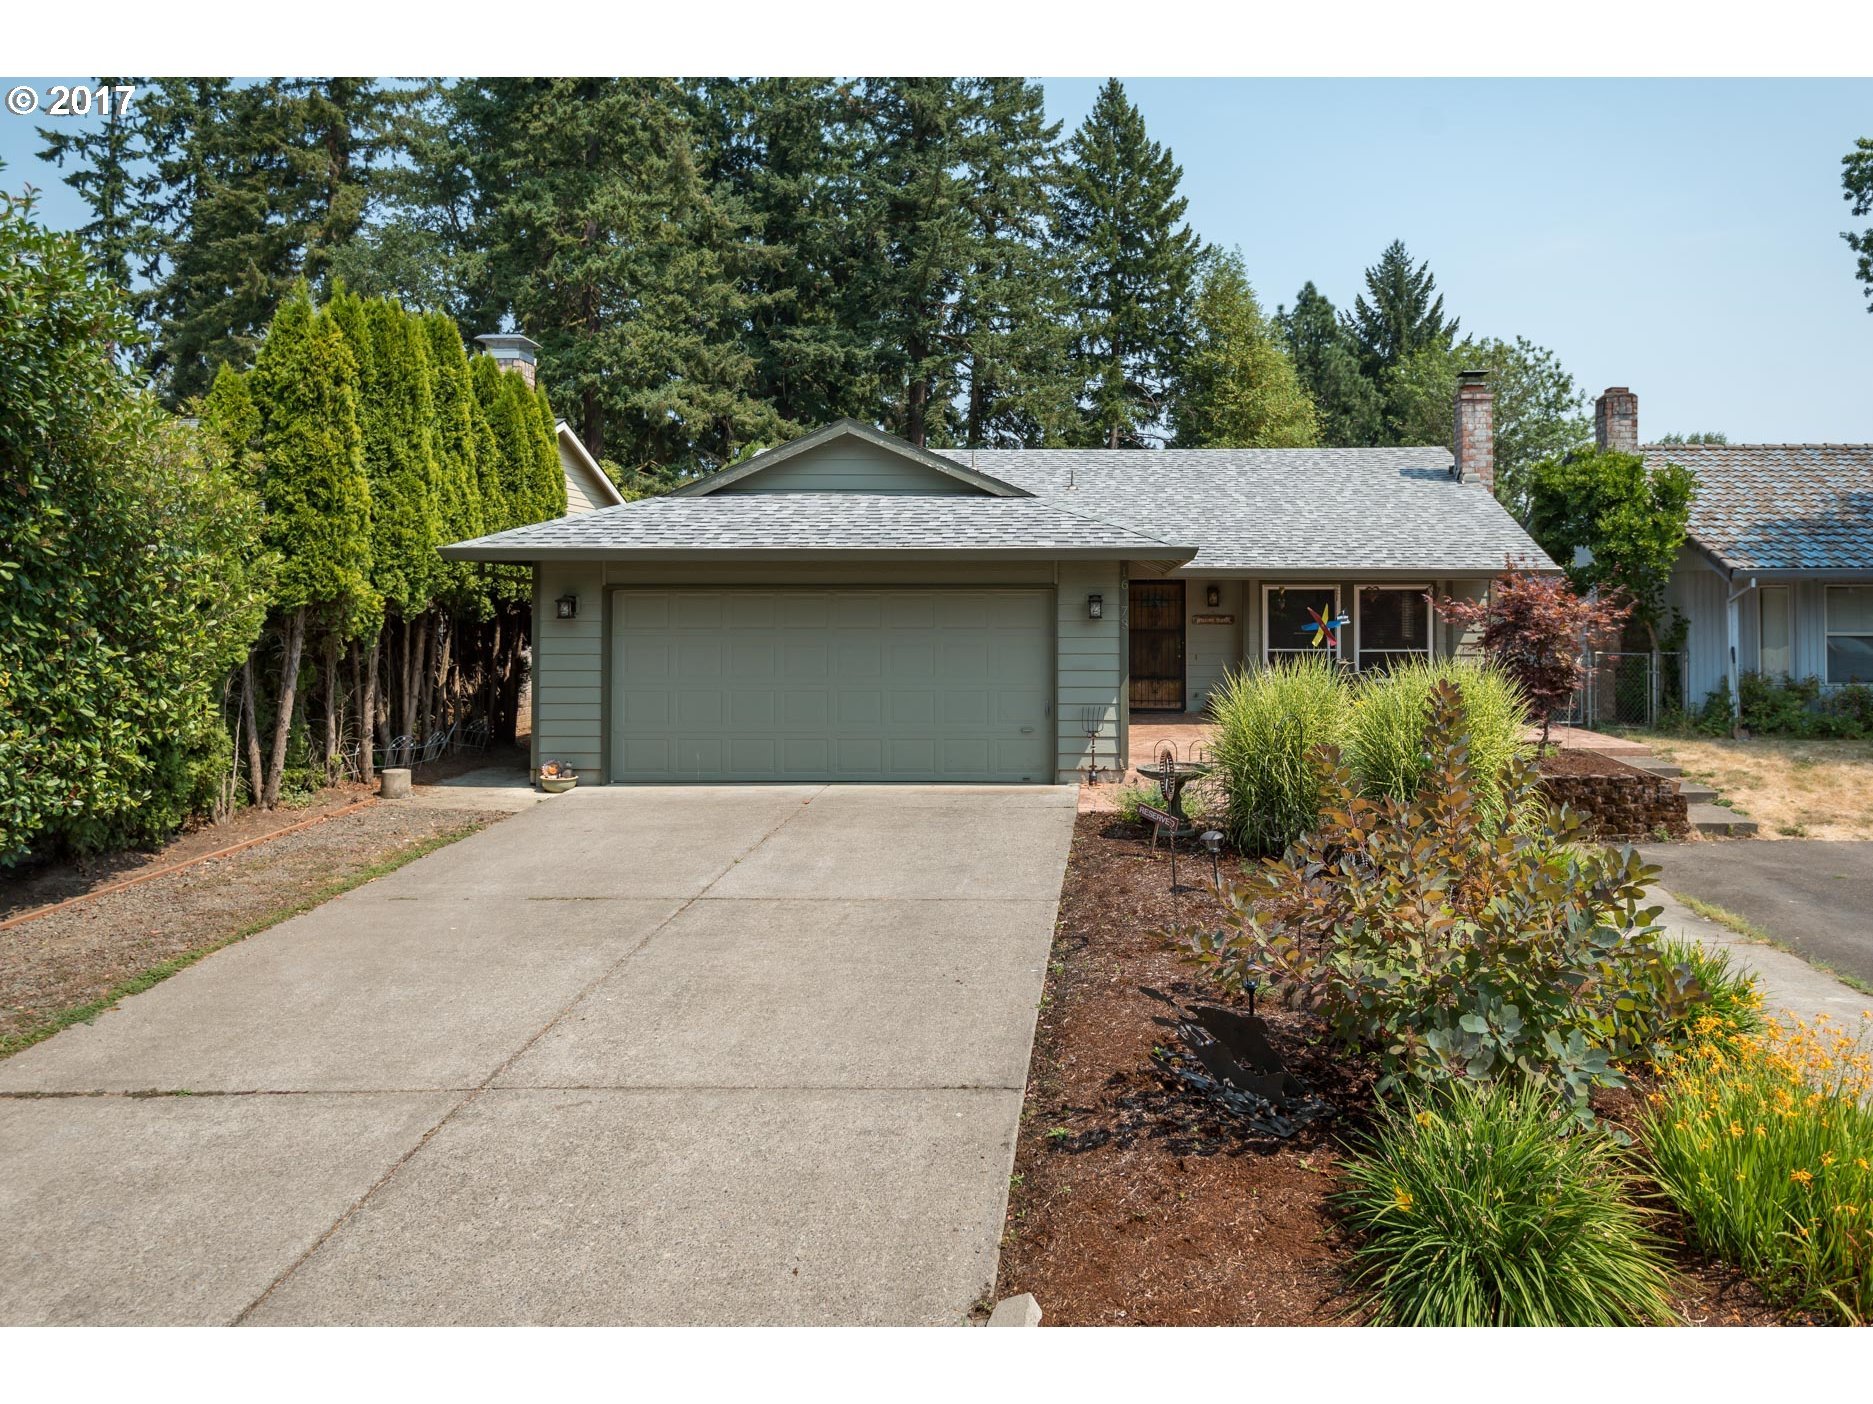 Must see!!! One level home with spacious floor plan, quiet street and great backyard for entertaining. Just minutes to Nike, Intel and freeway.